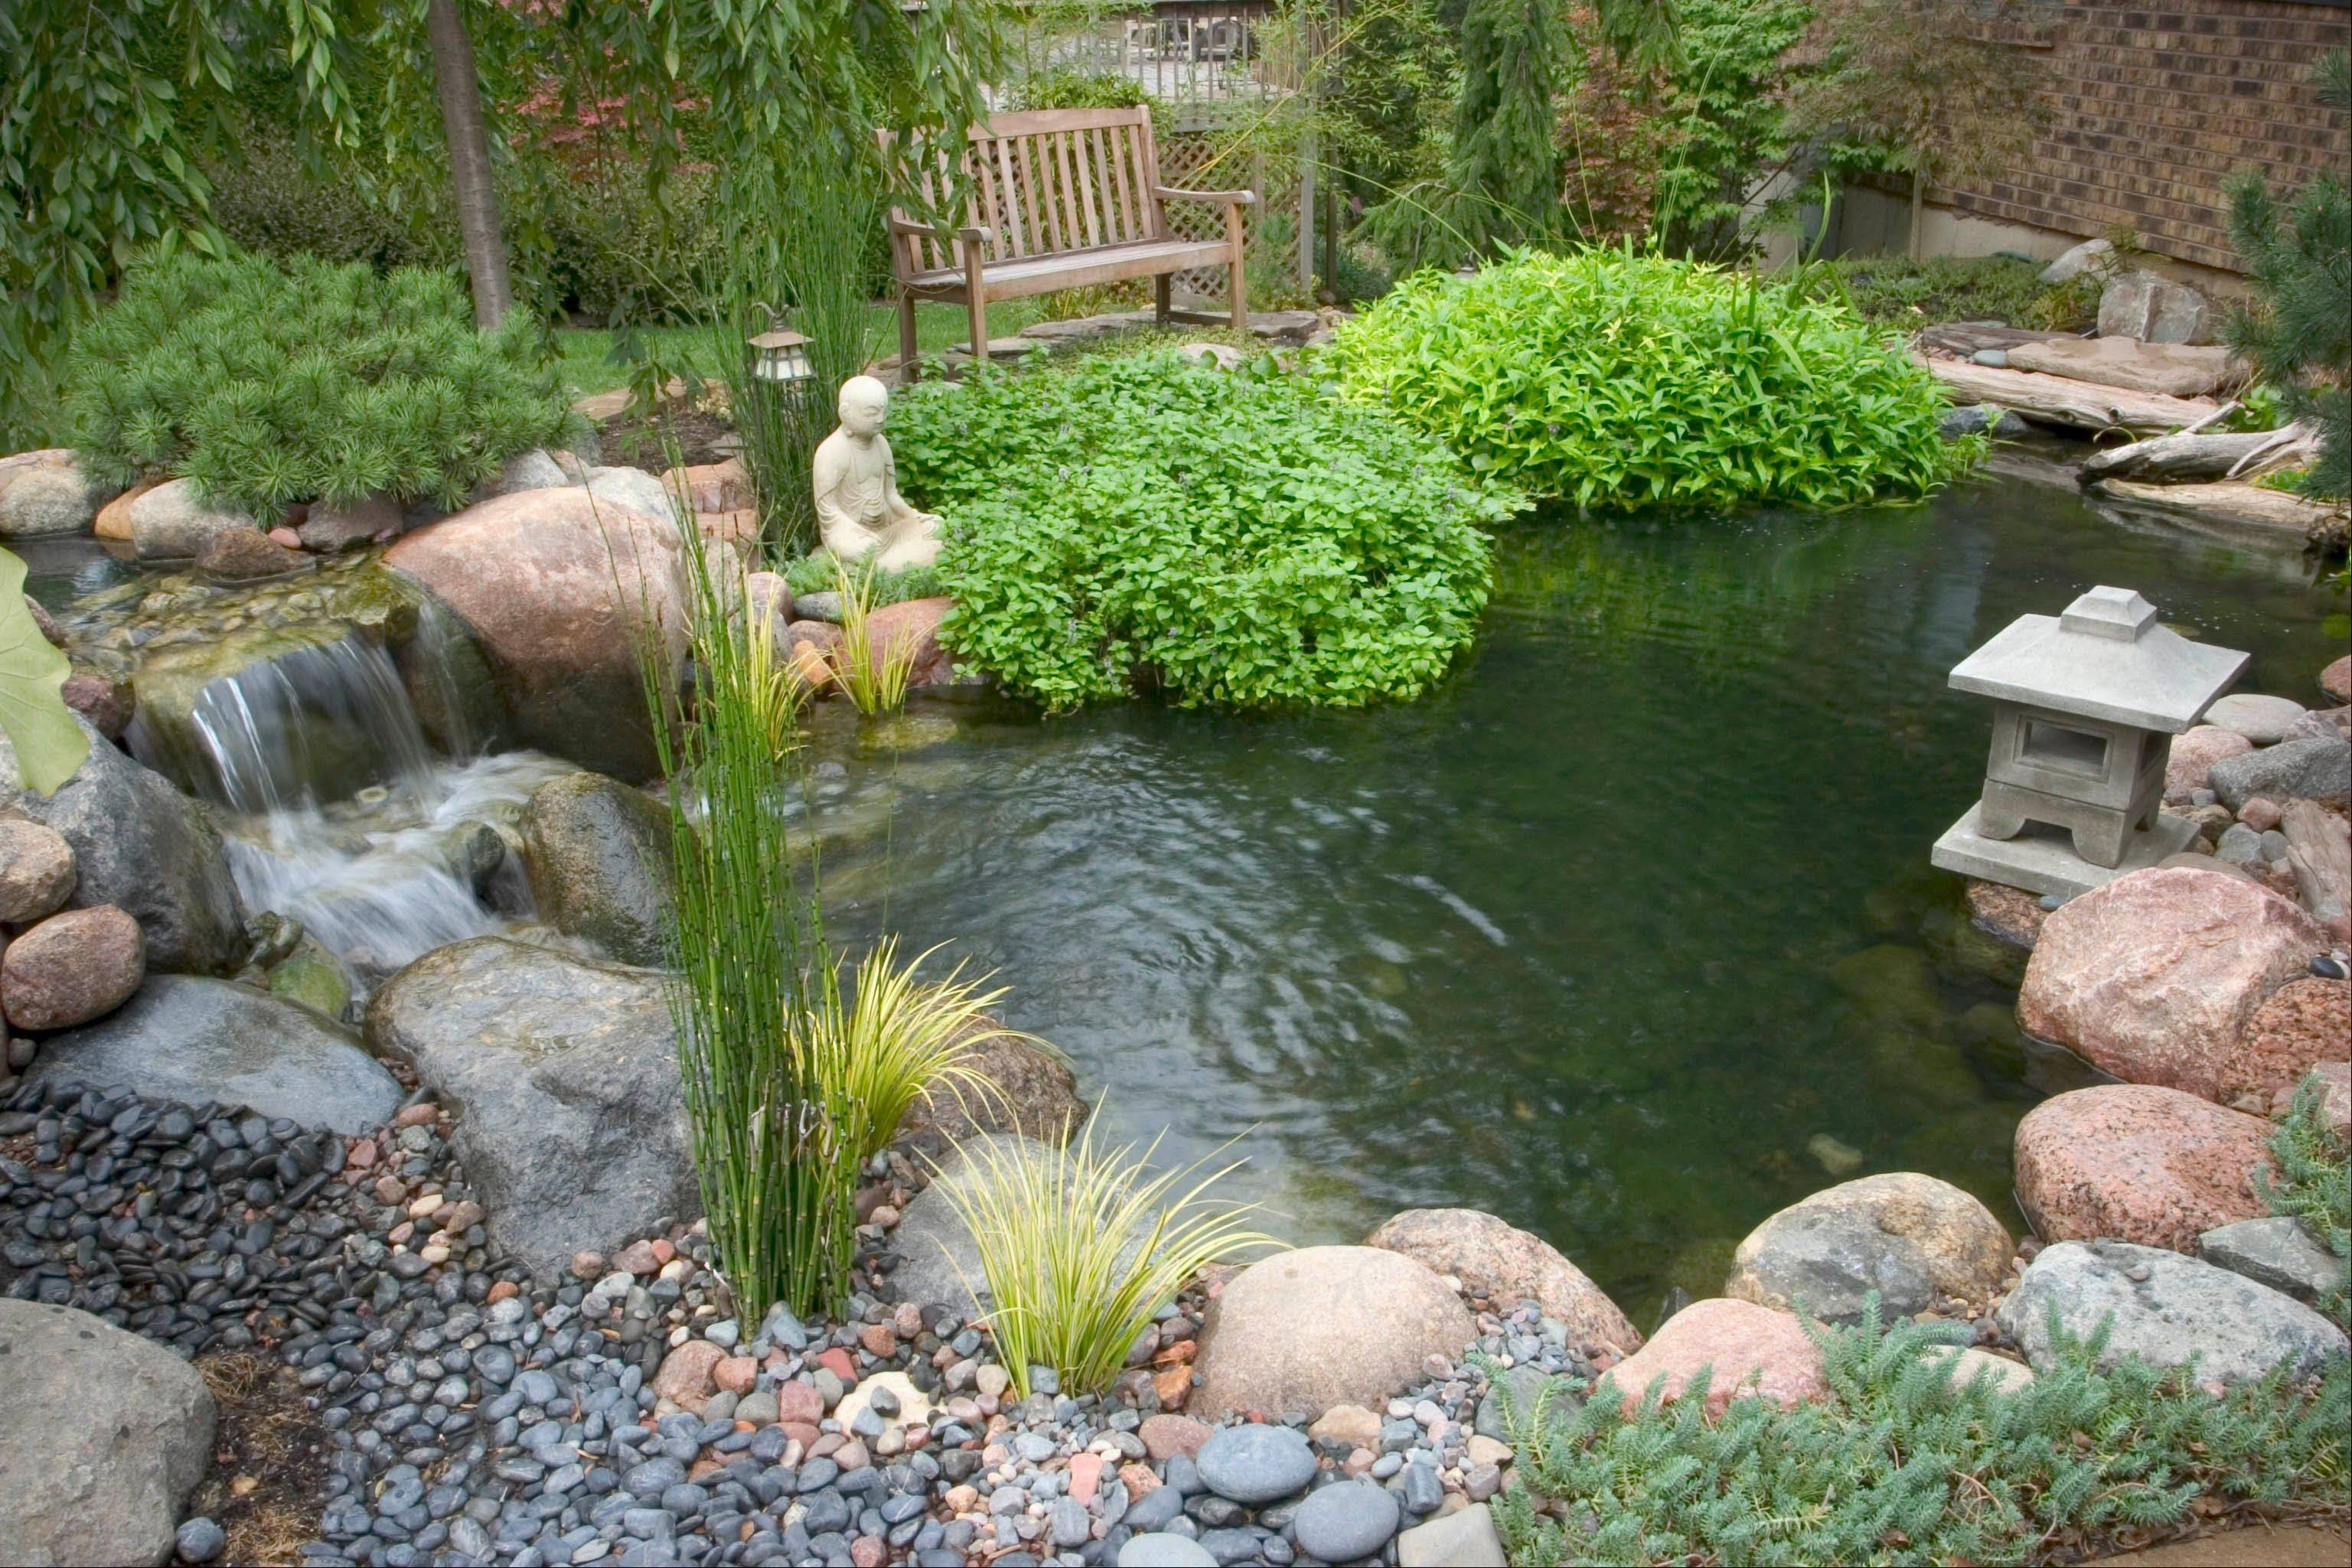 Ponds, such as this Zen garden pond, are making a strong comeback in part because technological advances have made them easier to maintain.